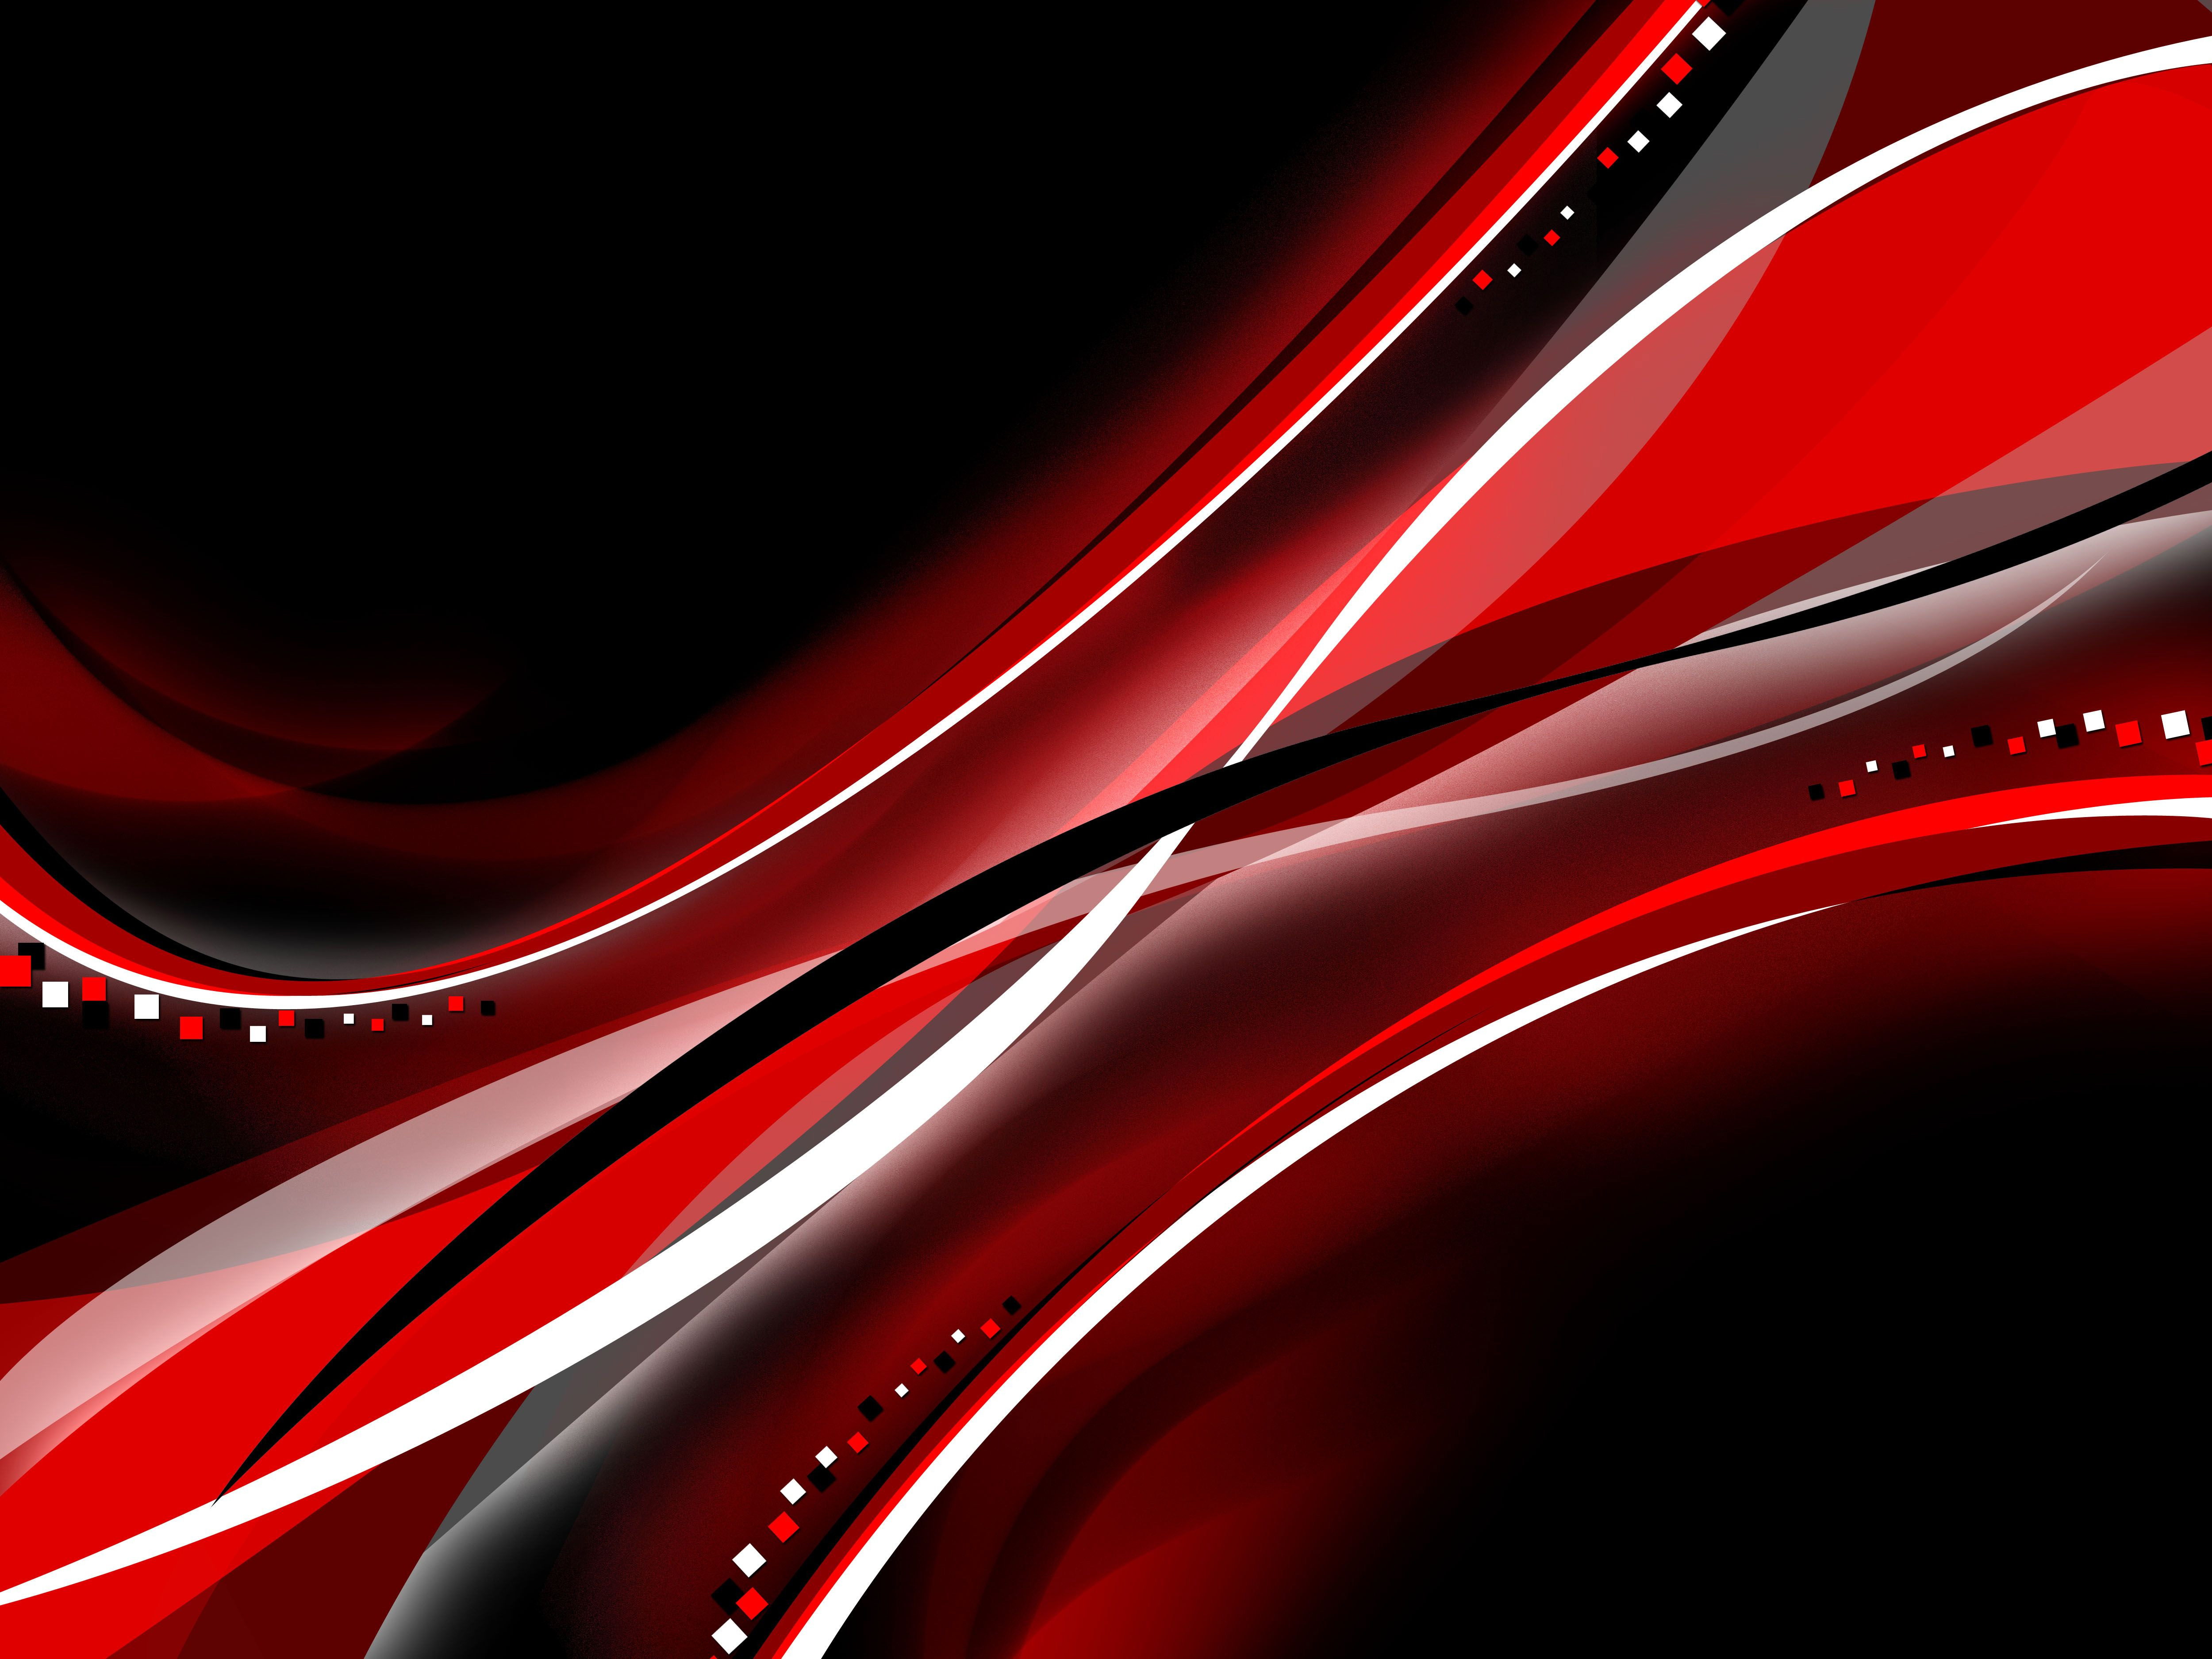 Red Black Color Interval Abstract 4k Hd Abstract 4k